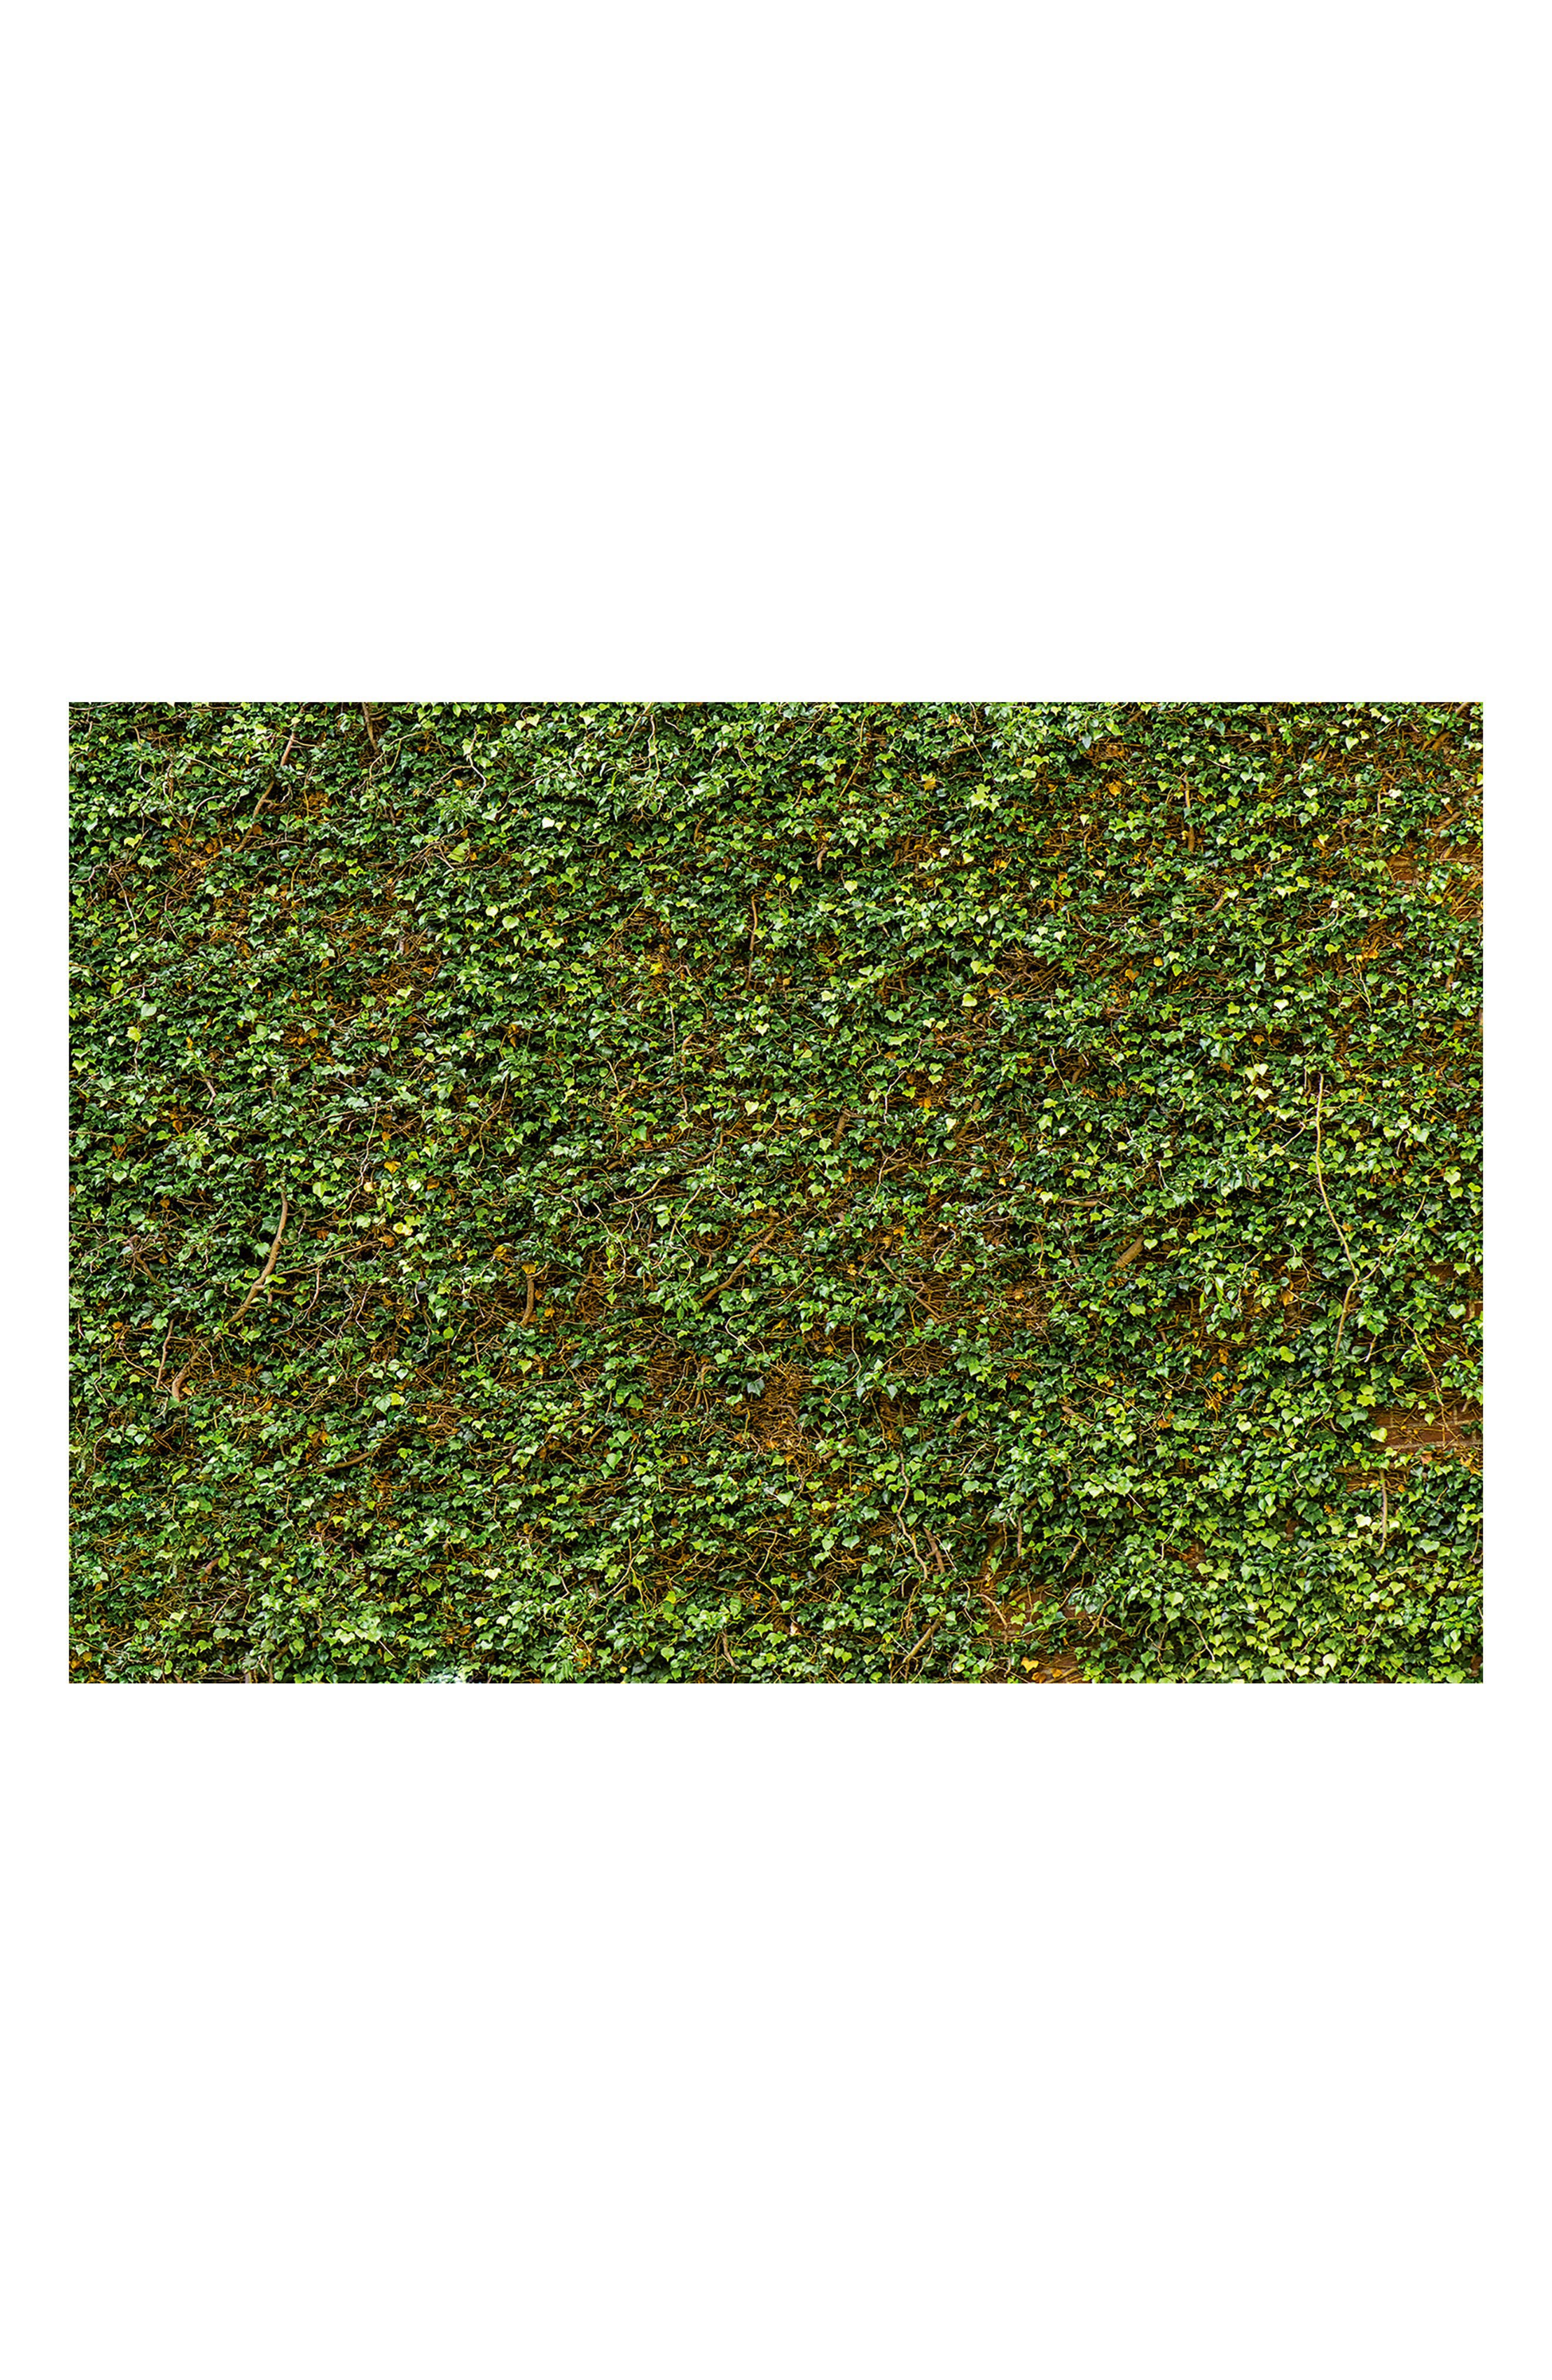 Ivy 8-Panel Wall Mural,                         Main,                         color, Green